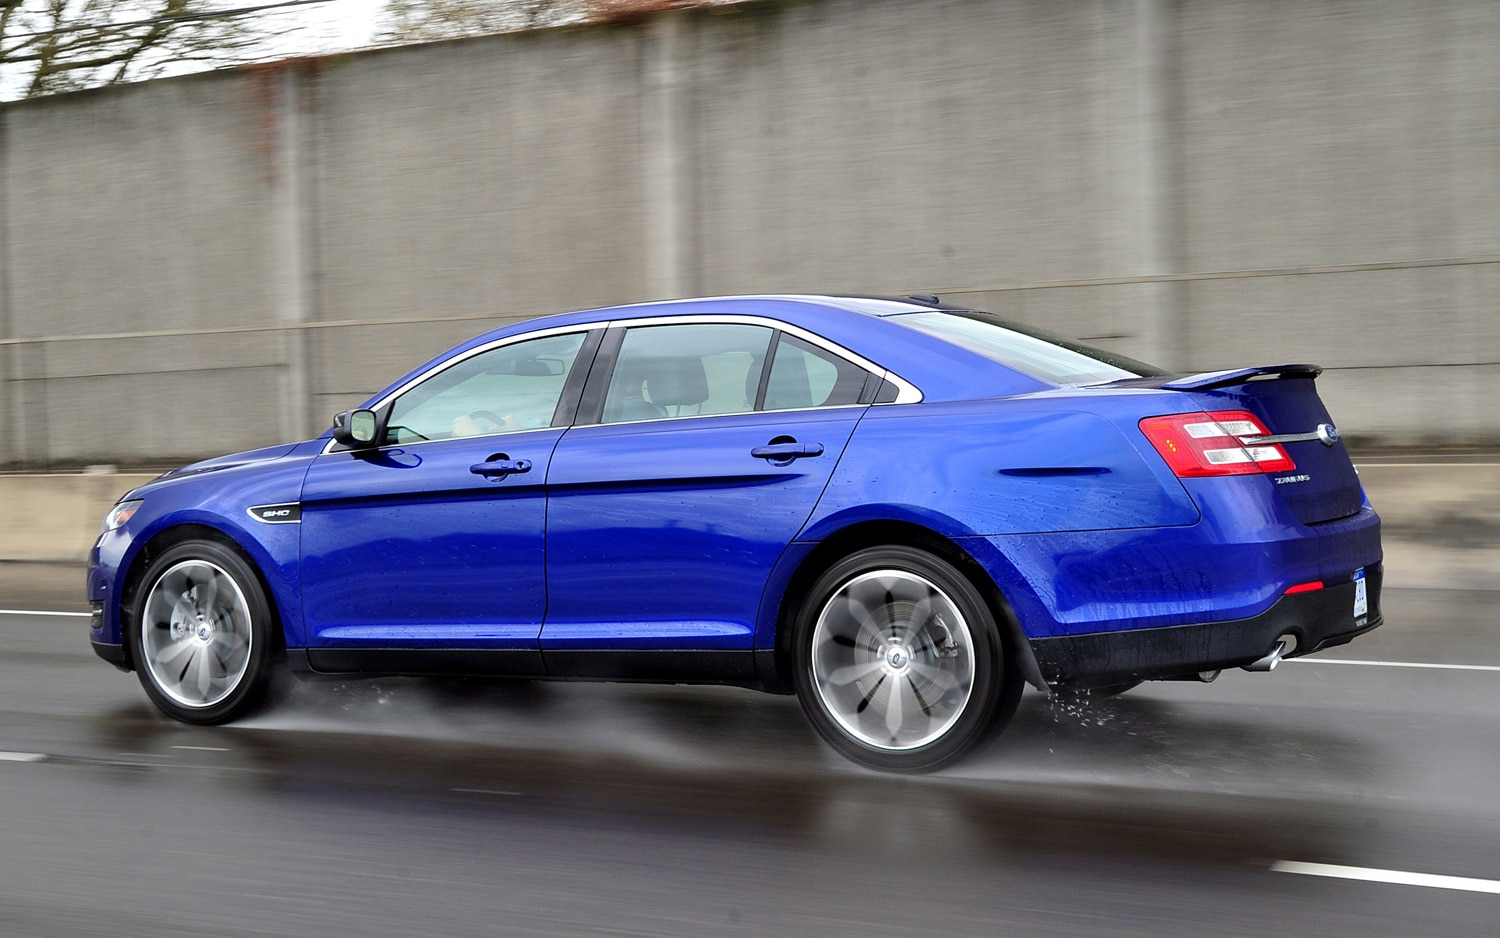 First Drive: 2013 Ford Taurus - Automobile Magazine